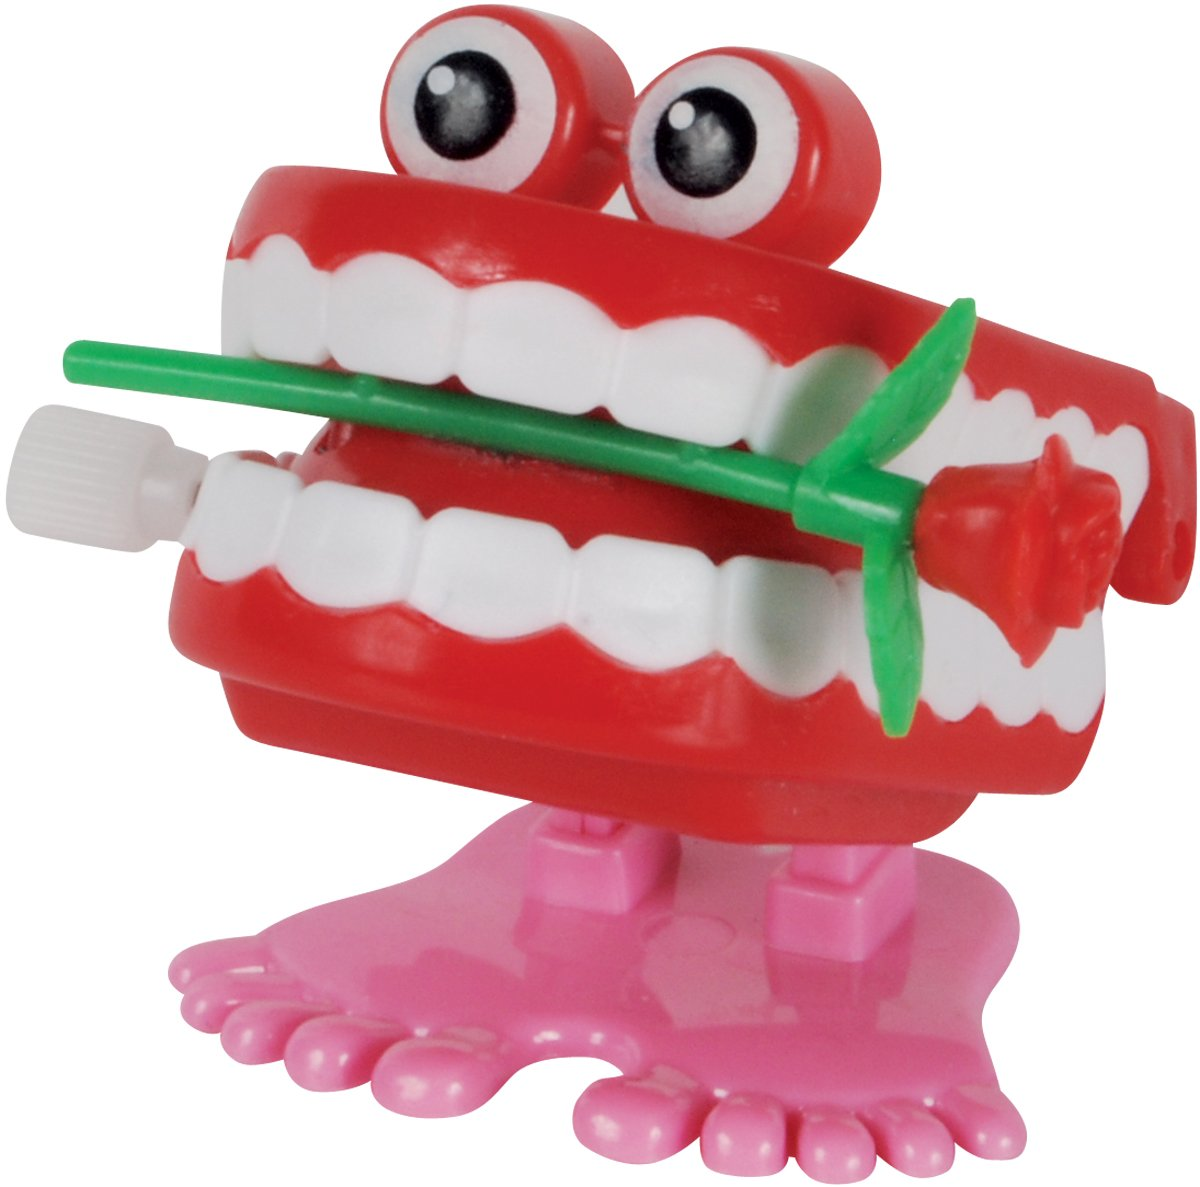 Loftus International Valentine's Day Wind-Up Teeth With Rose 2'' Novelty Toy, Red Pink White, 12 Pack Novelty Item